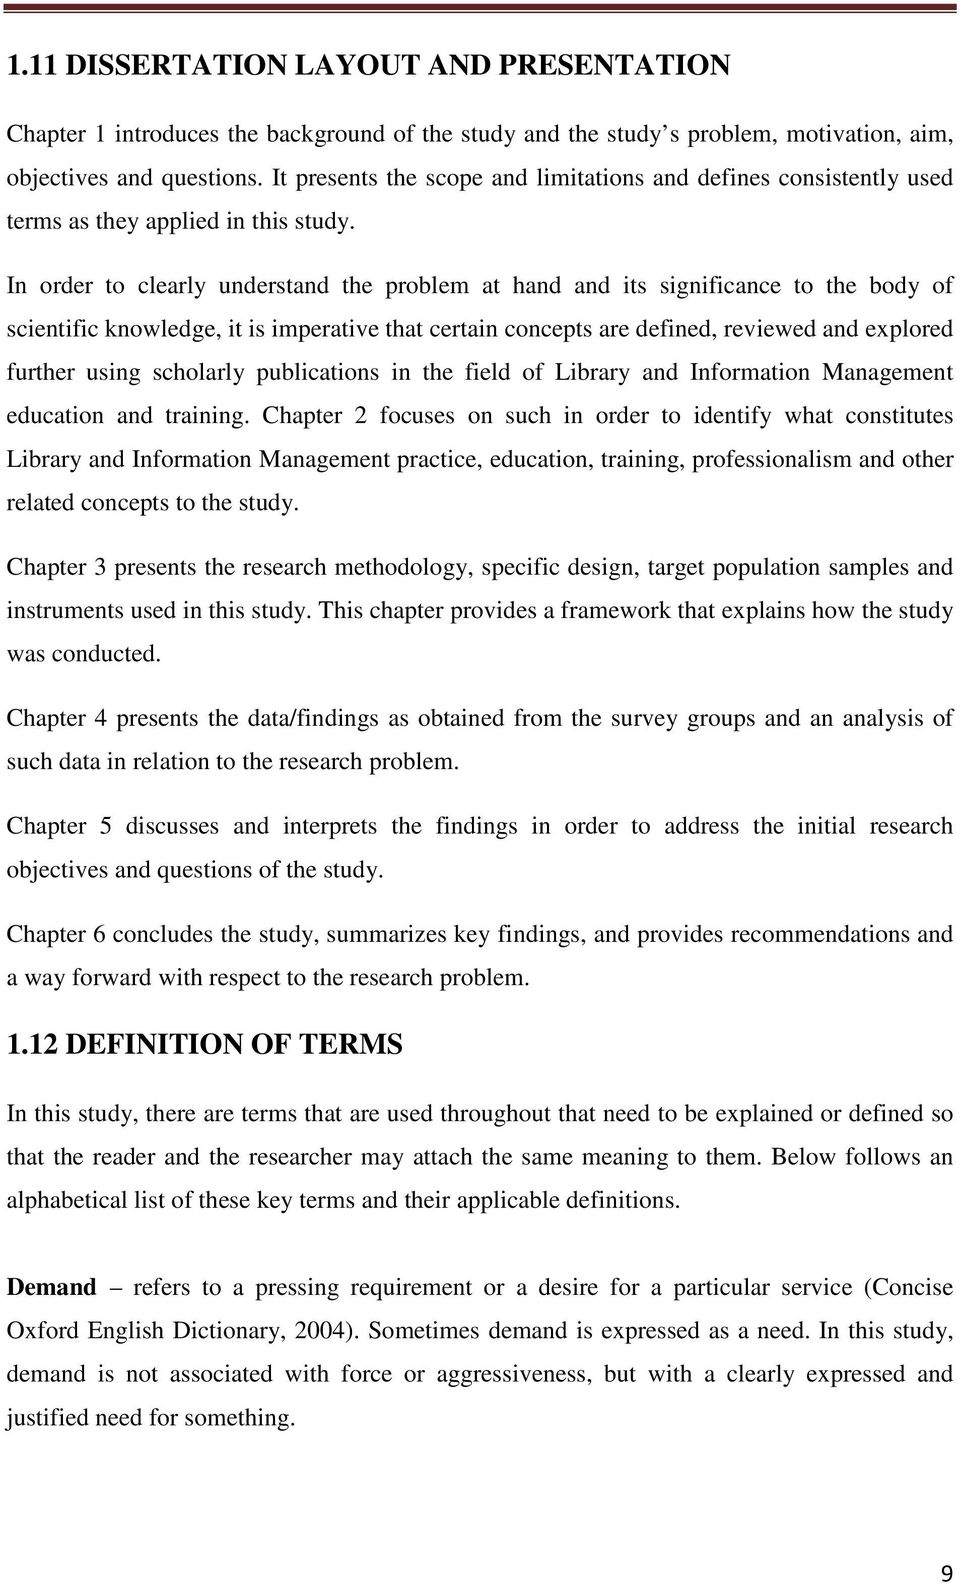 Thesis Statement Essays  Essay With Thesis also Compare Contrast Essay Papers Dissertation Submitted In Partial Fulfillment Of A Masters  Write A Good Thesis Statement For An Essay